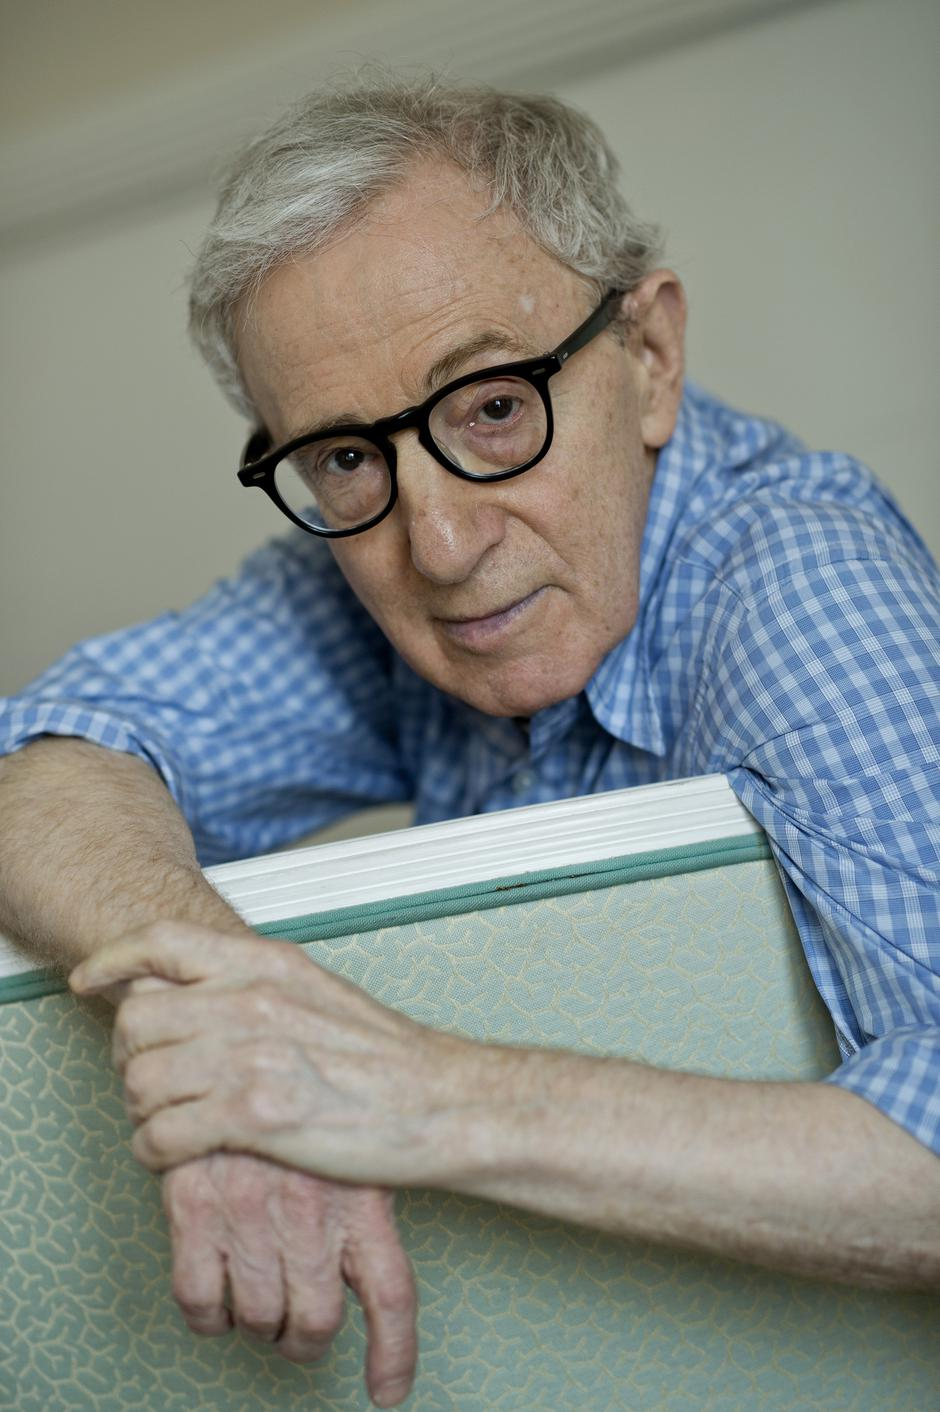 Exclusive - Cannes - Woody Allen Photo Session | Autor: Briquet-Hahn/ABACA/PIXSELL